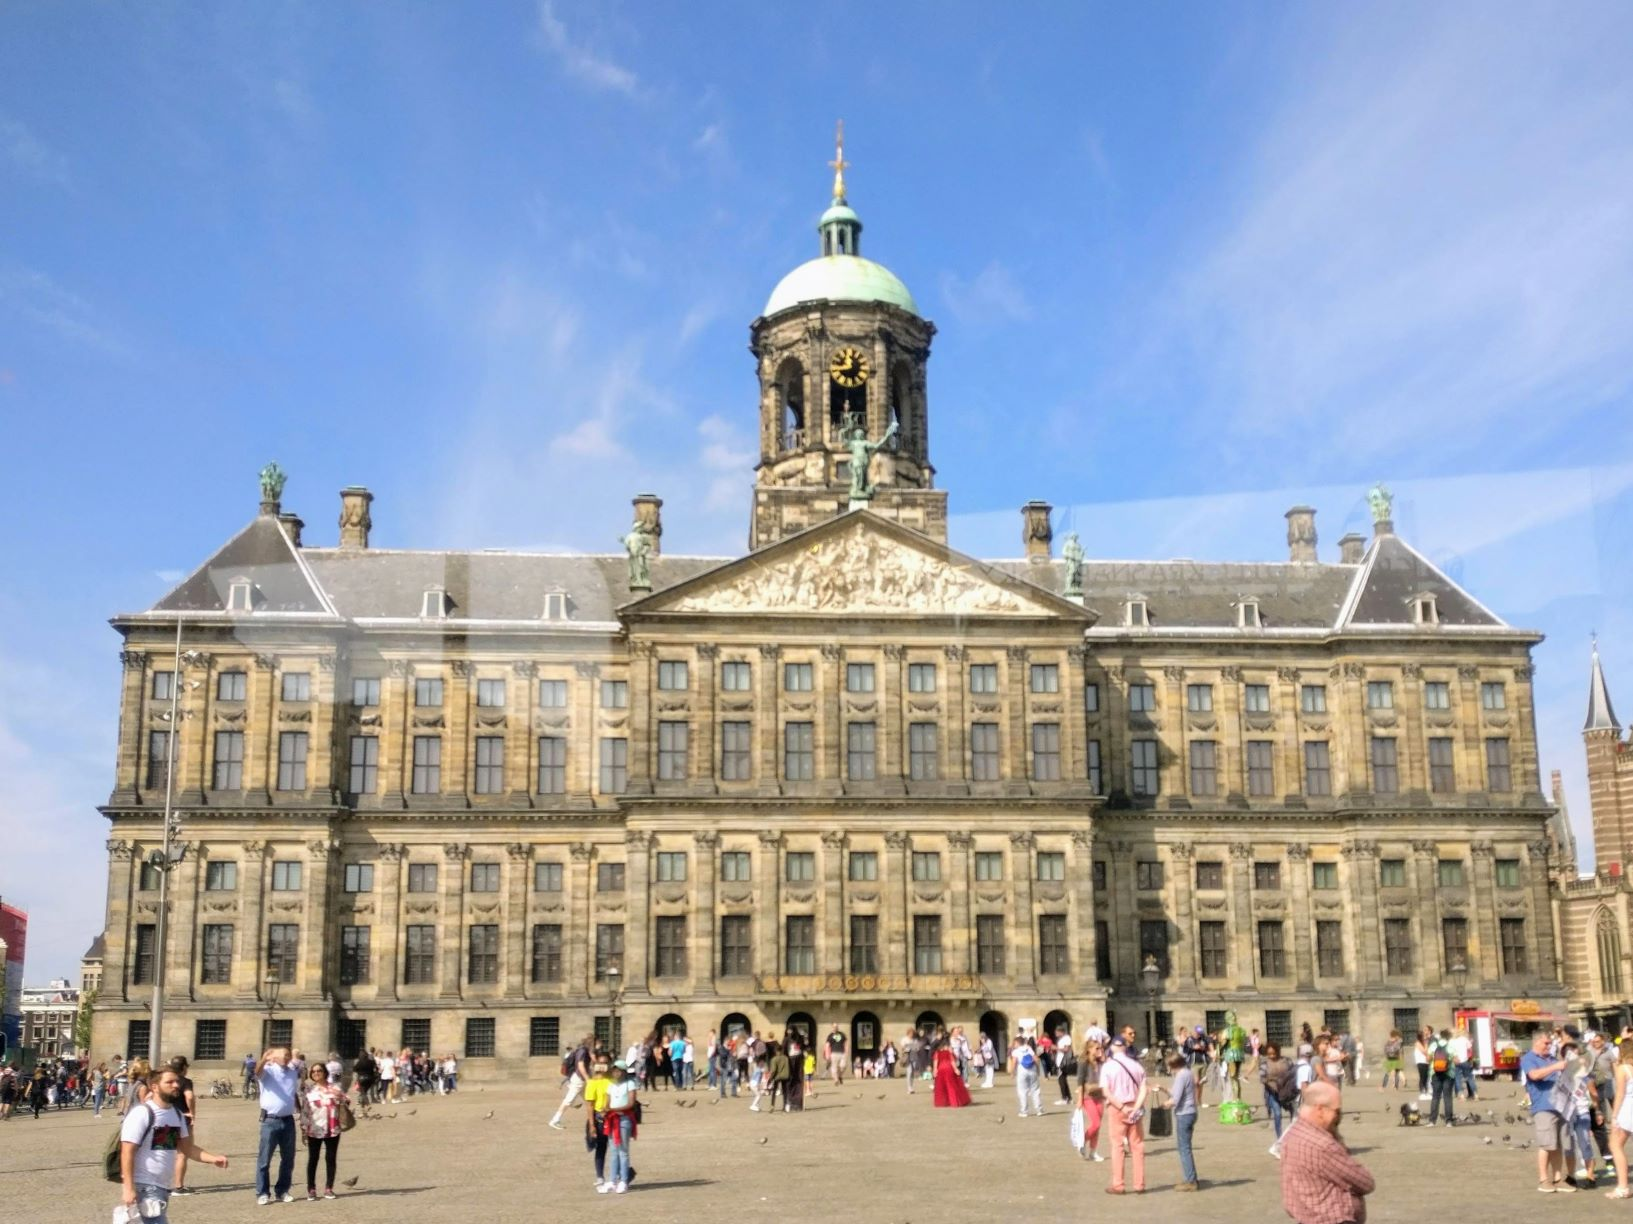 One of the main things to do in dam square is to visit the Royal Palace, things do amsterdam